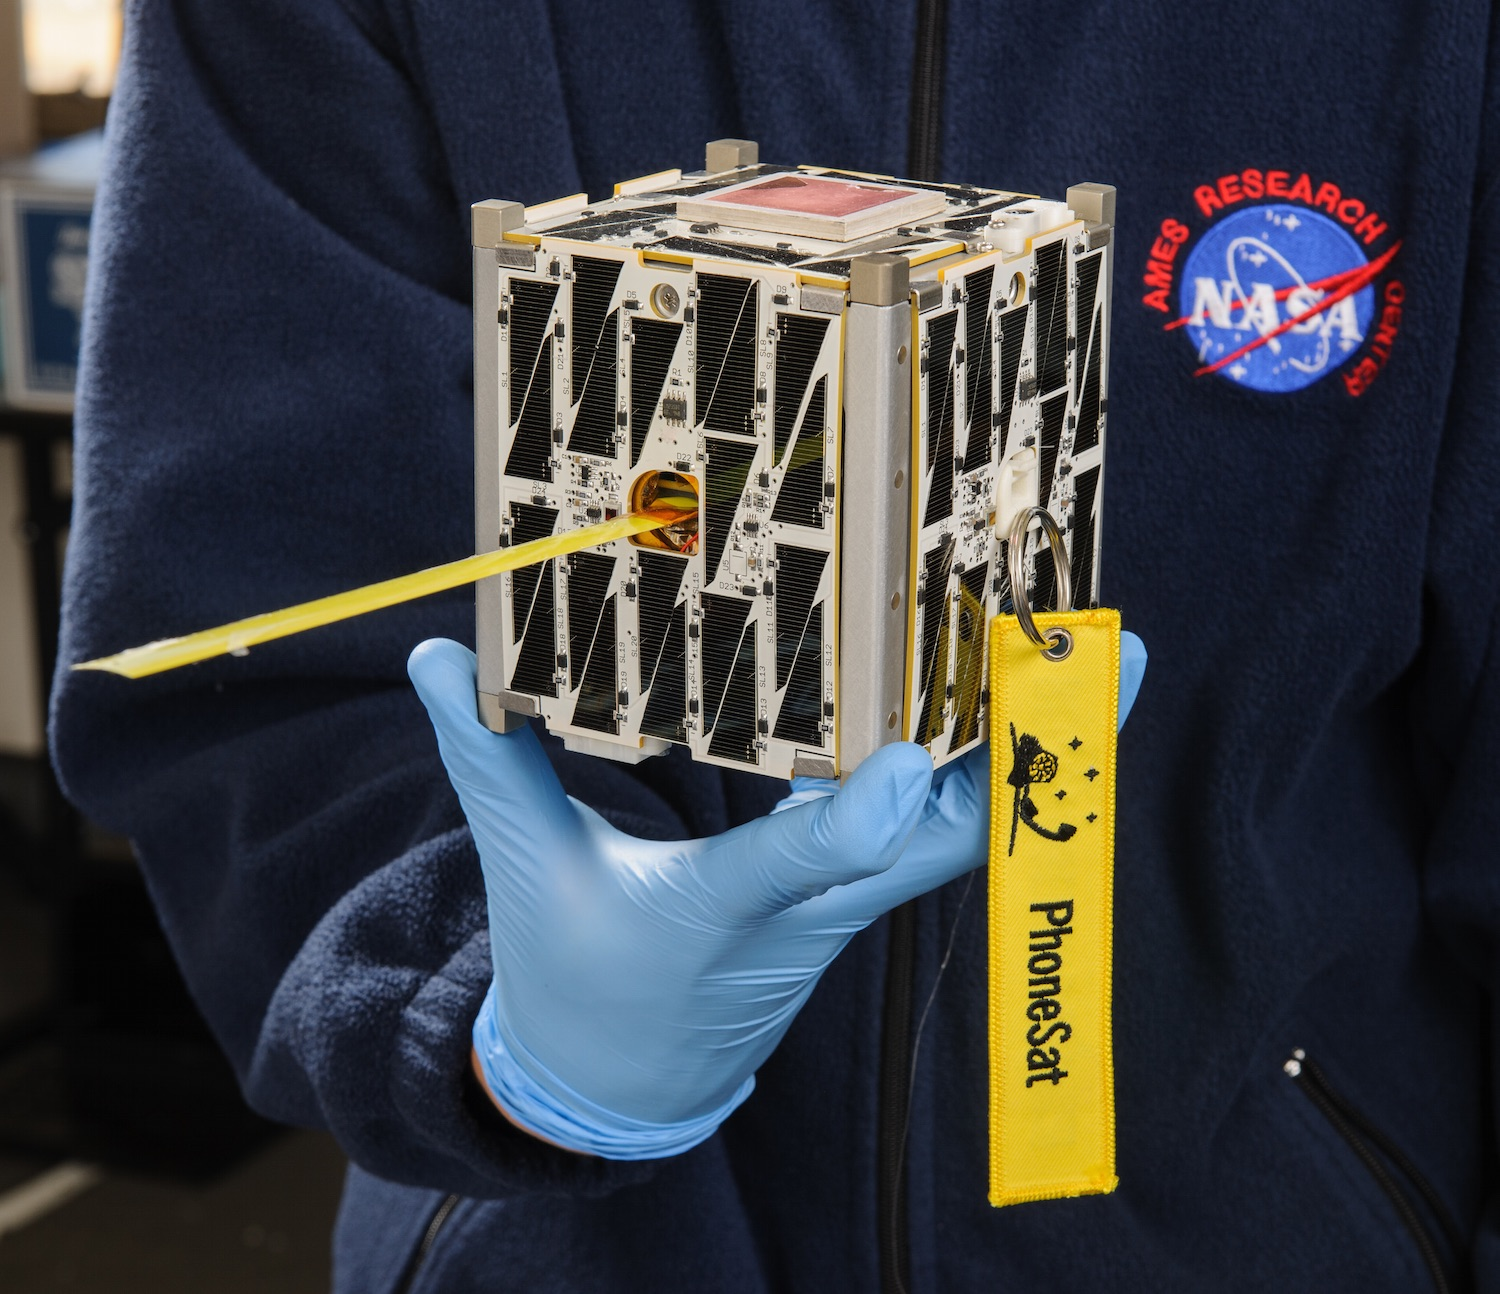 CubeSats,satellites that can fit in the palm of your hand, have changed the space industry. This picture shows Nasa's PhoneSat which used a disassembled smartphone as the on-board computer. Credit:  Nasa